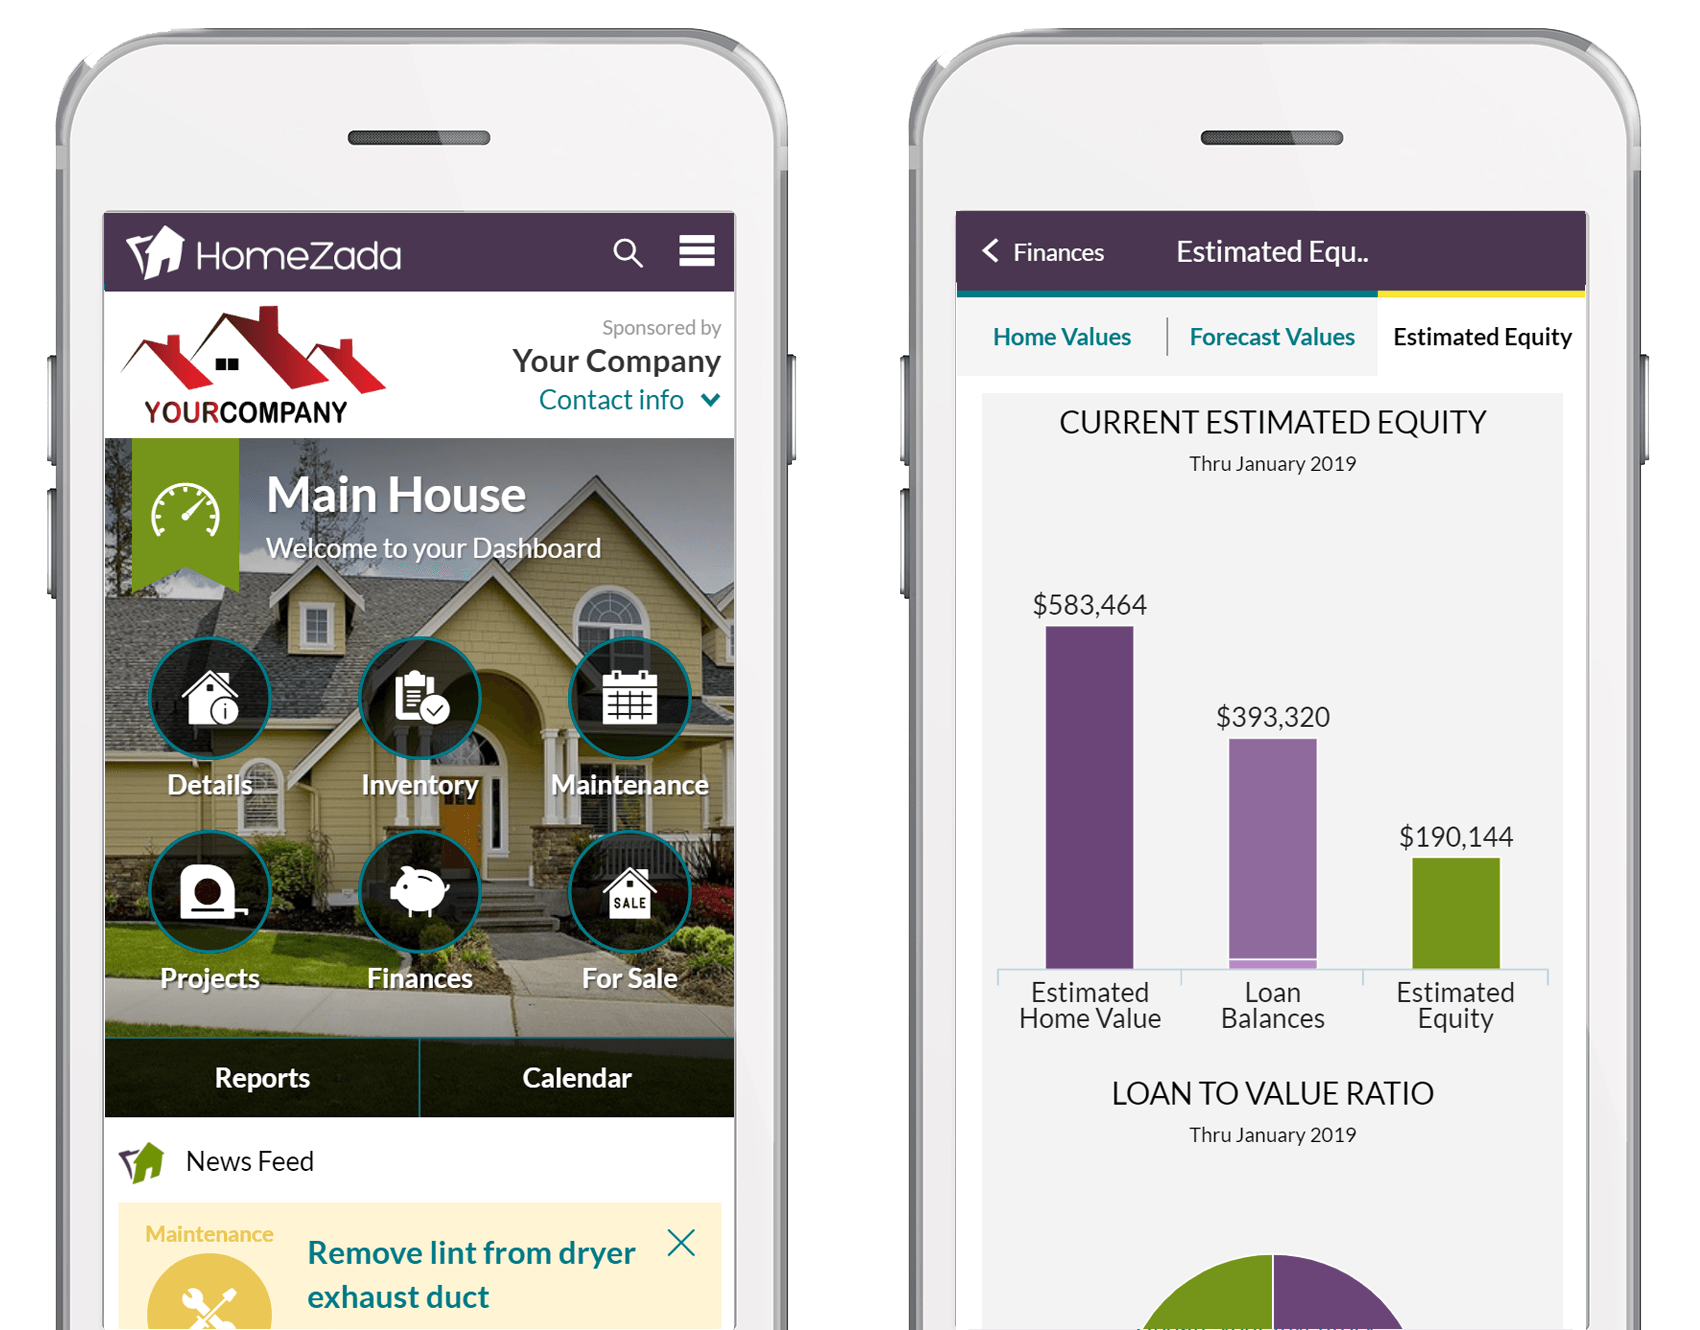 HomeZada for Mortgage Companies